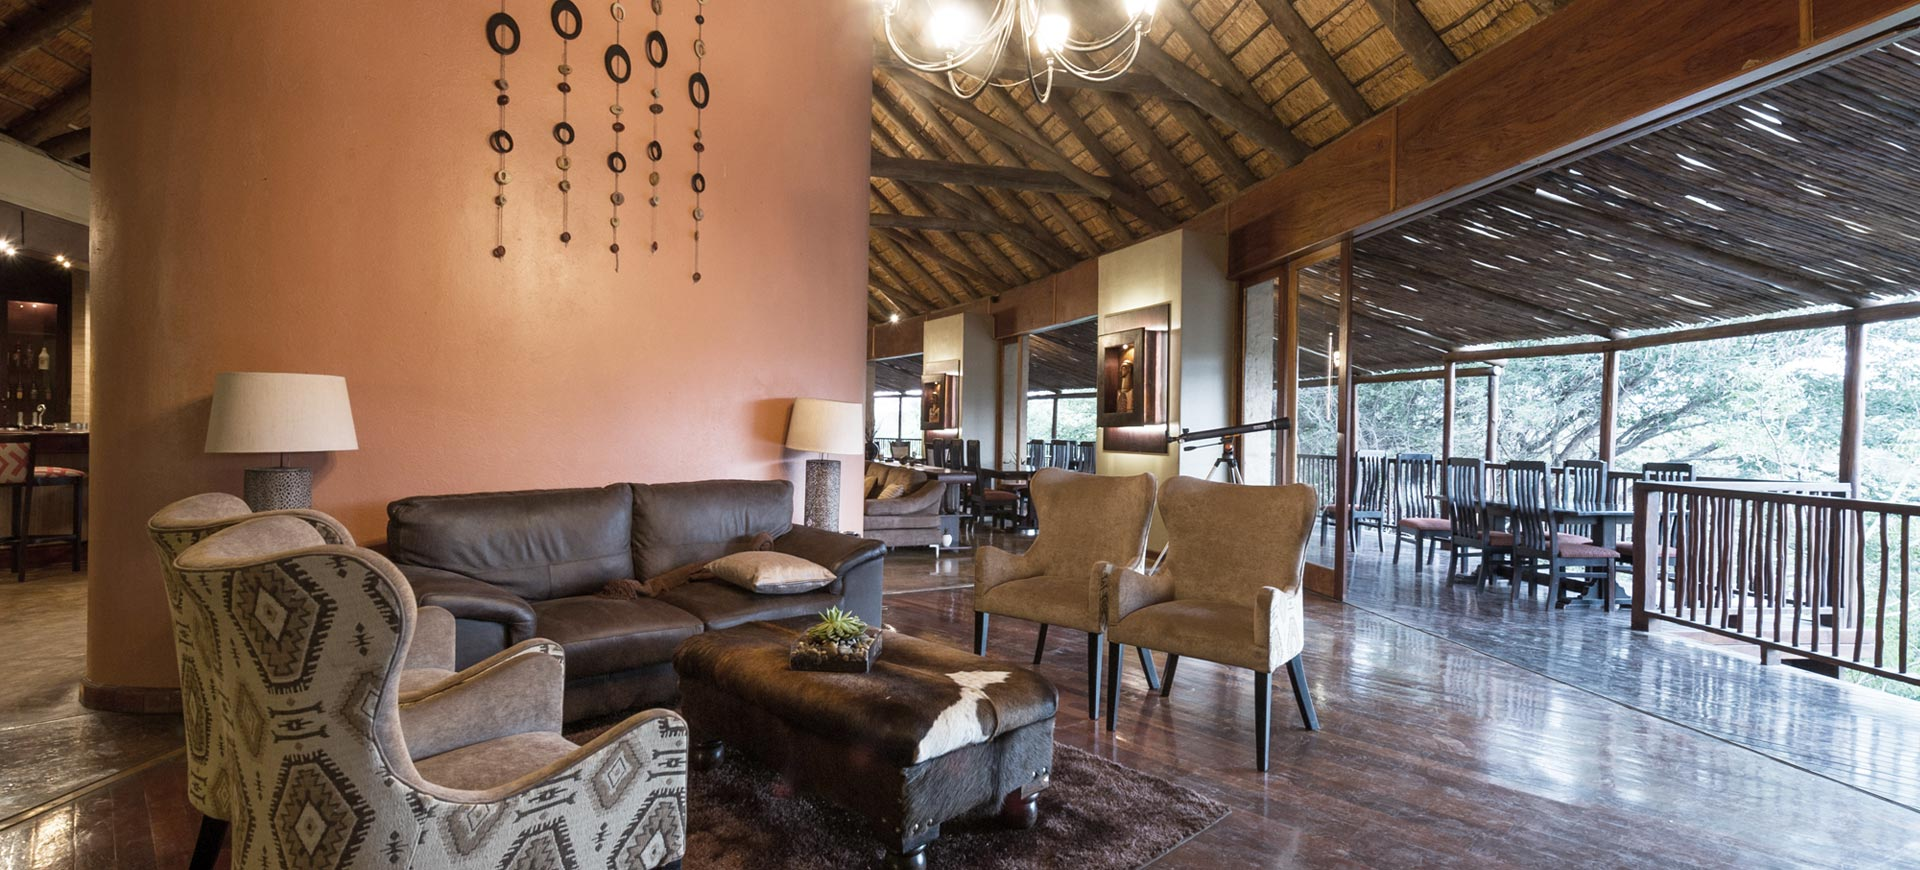 Shishangeni Private Lodge Kruger National Park